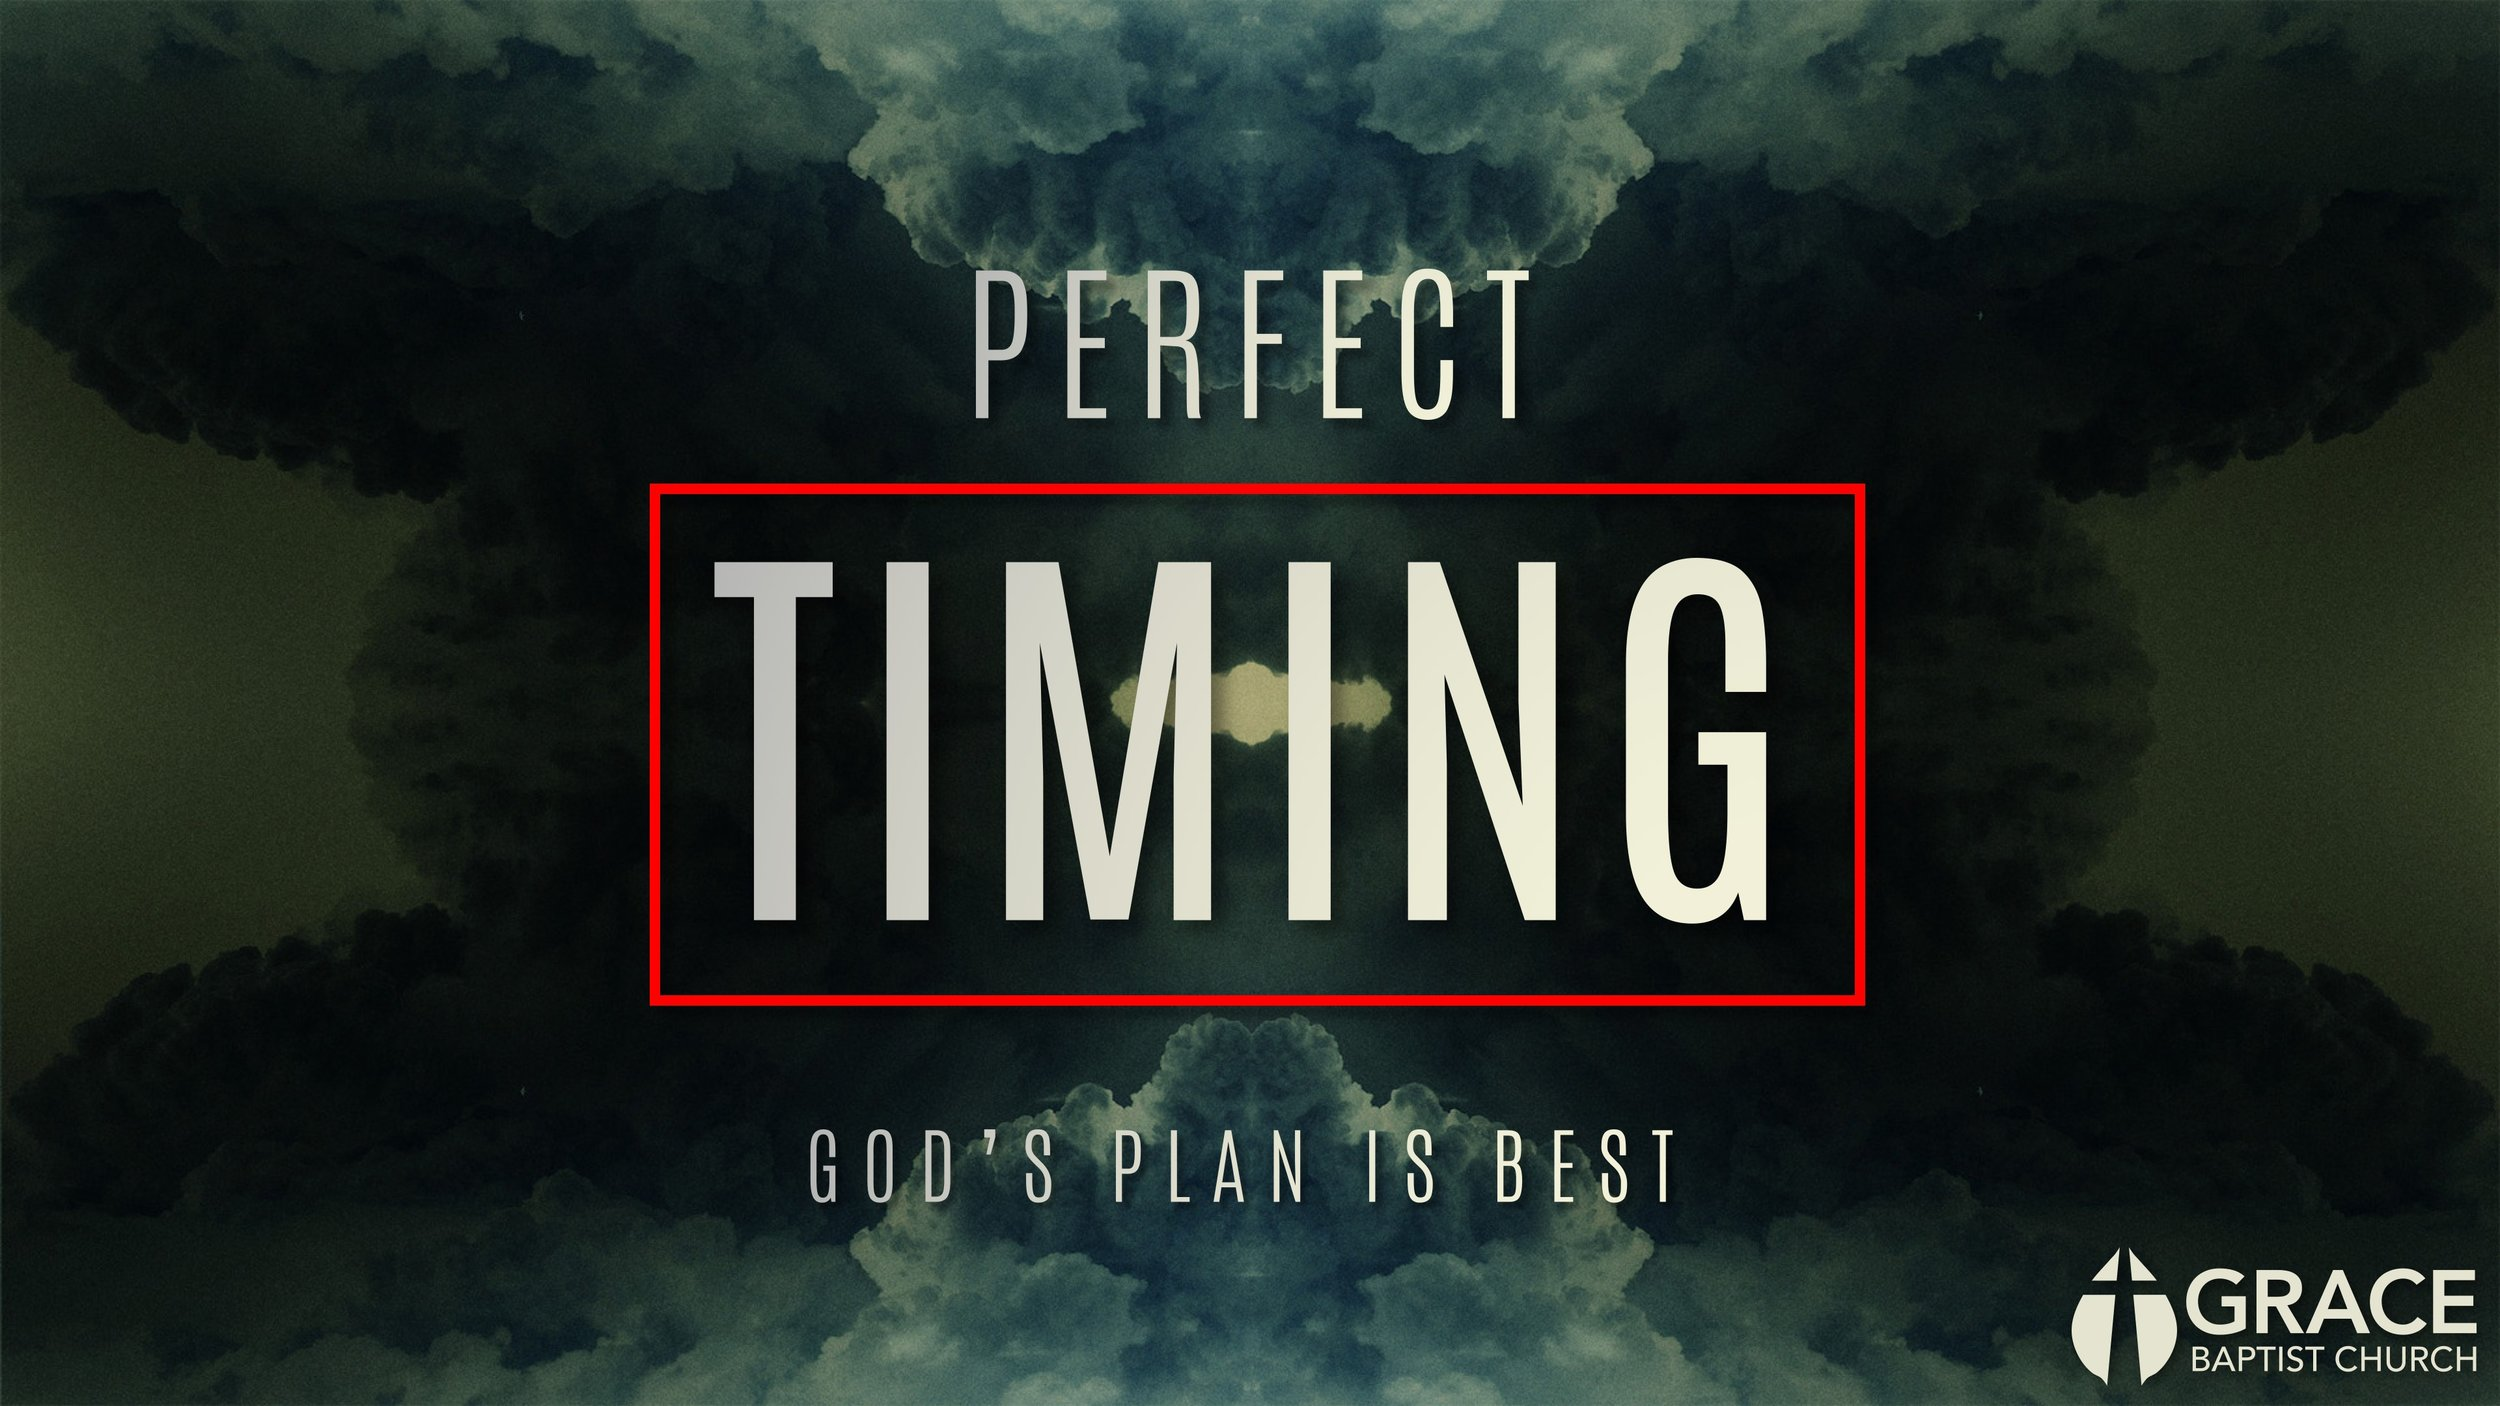 5 Perfect Timing 'God's Plan Is Best' .jpg